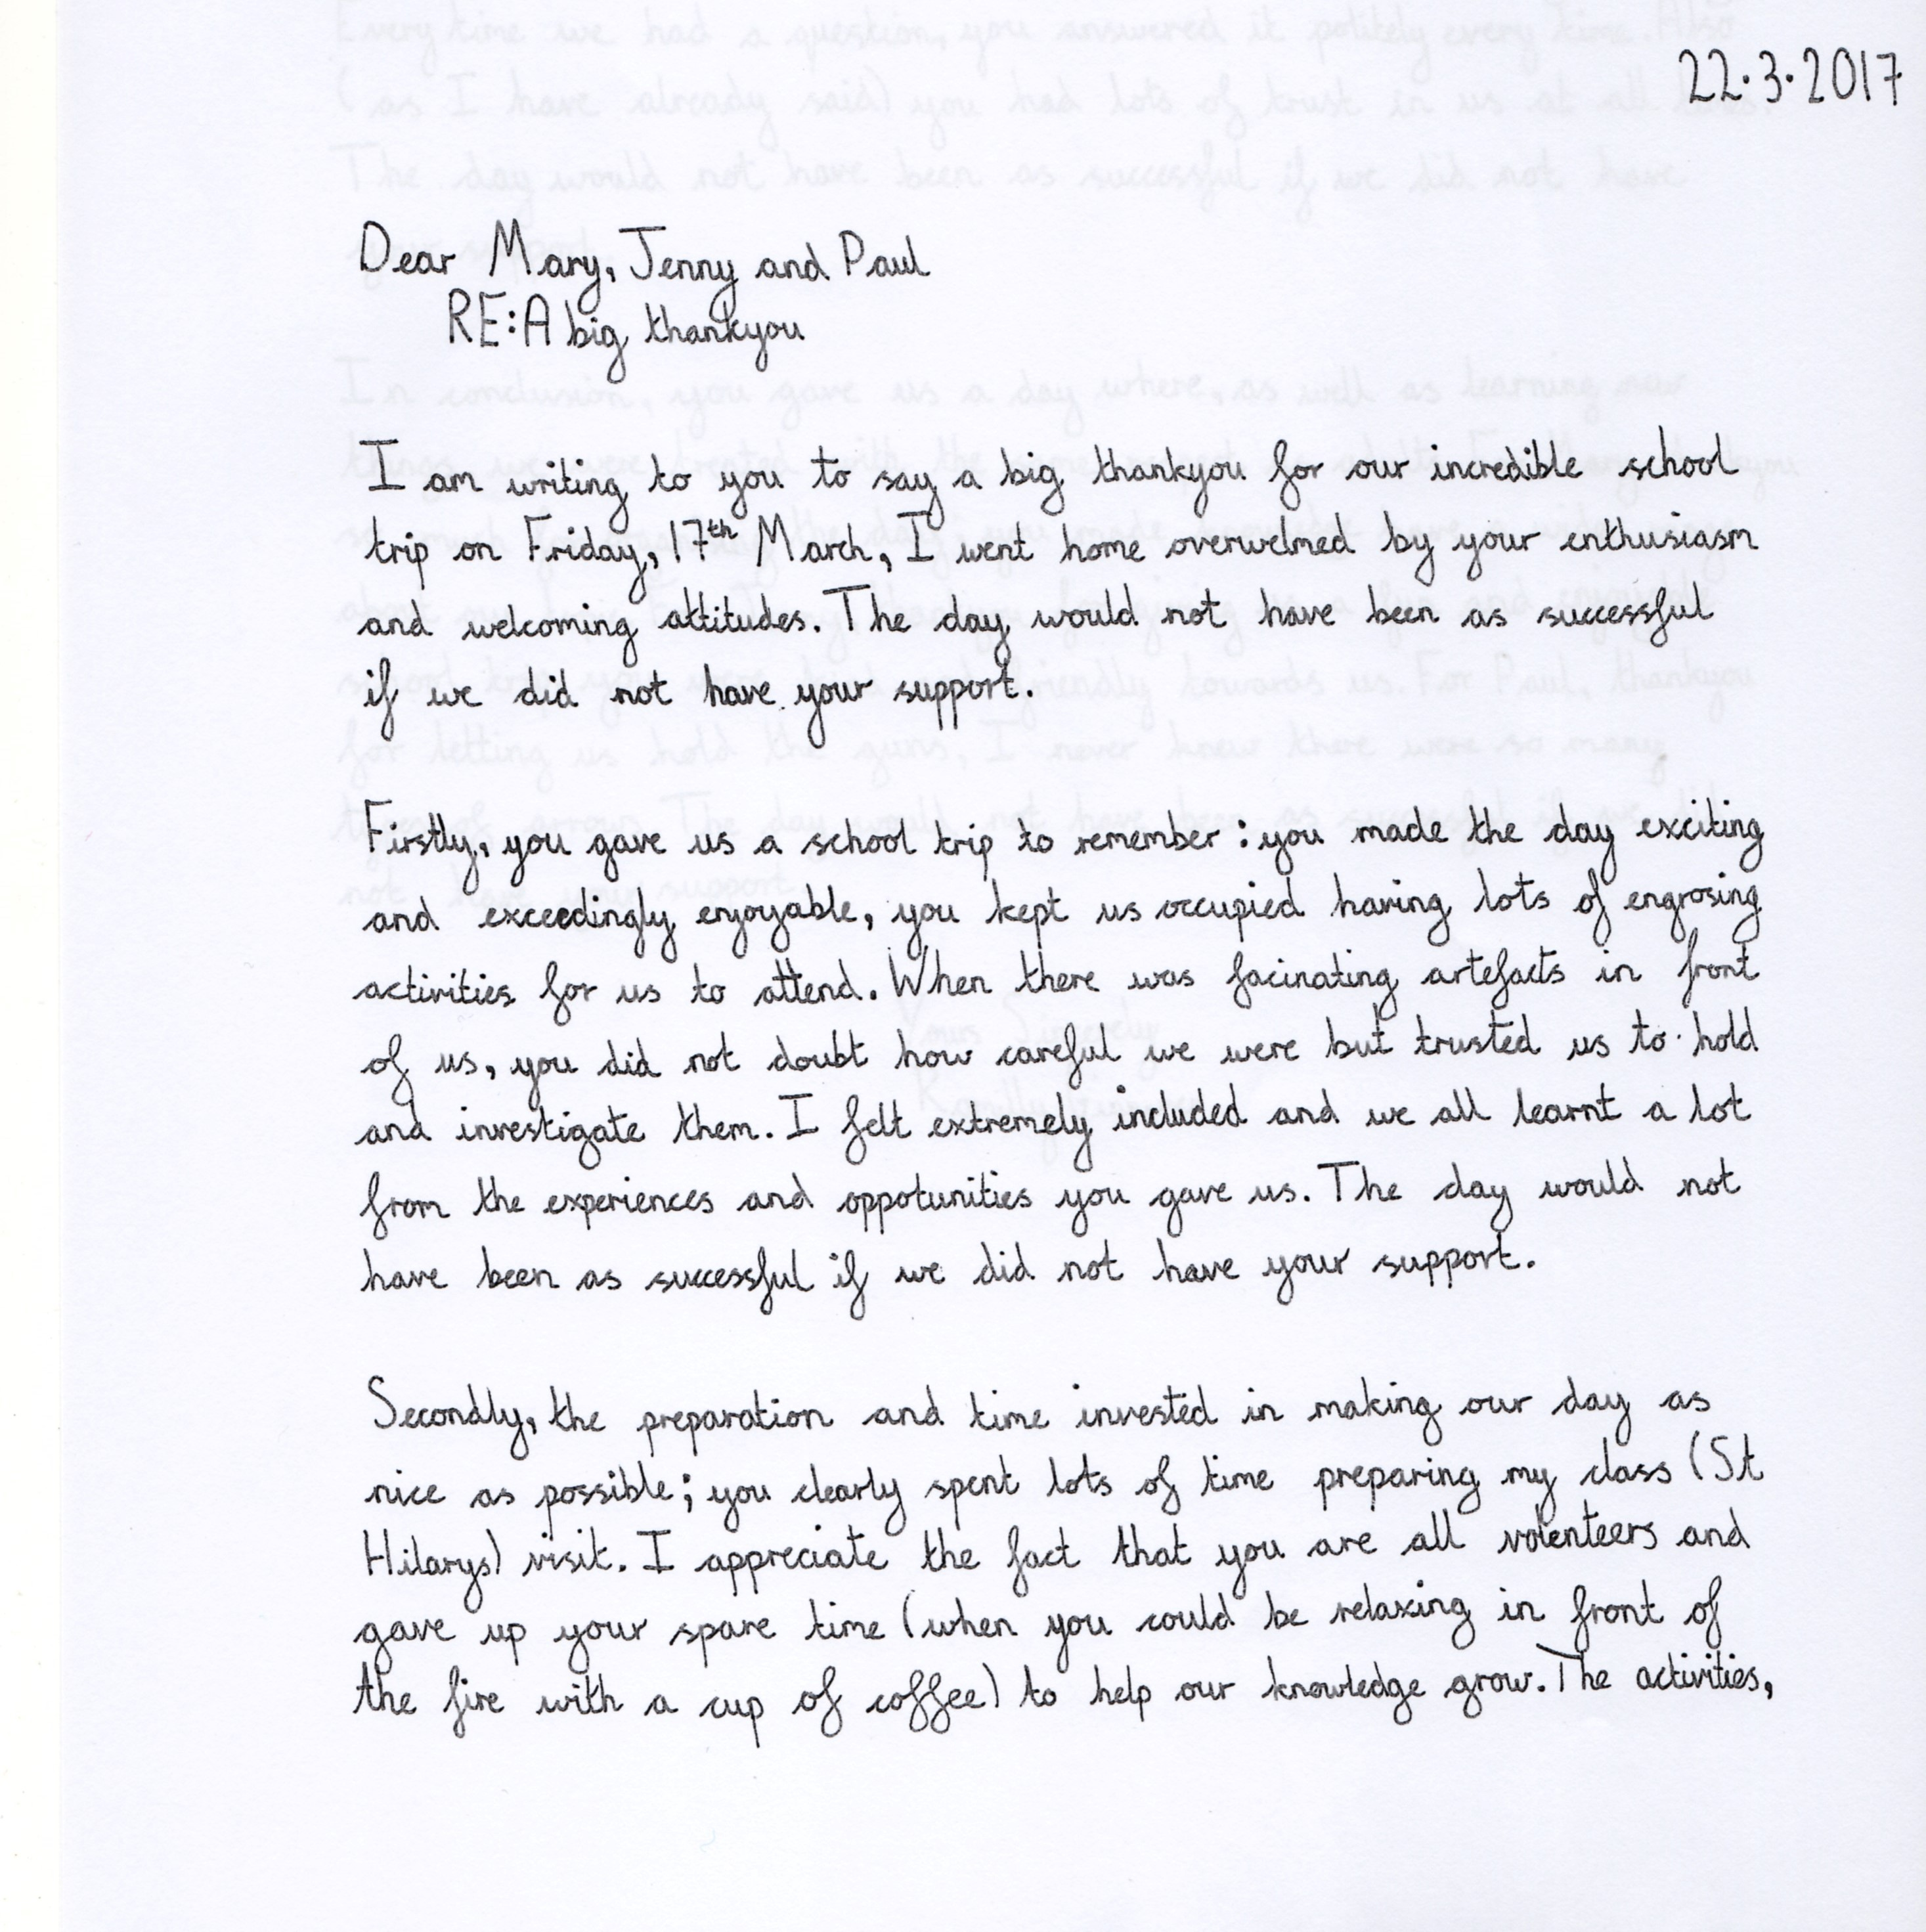 A Thank You Letter Written By A Student Of St Hilarys School After